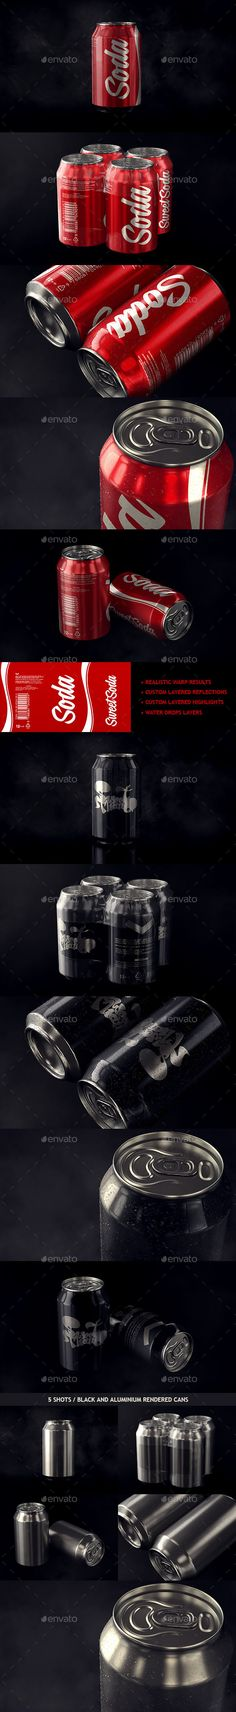 Photorealistic Aluminum Soda Can Mockup | Download: http://graphicriver.net/item/photorealistic-aluminum-soda-can-mockup/9810580?ref=ksioks